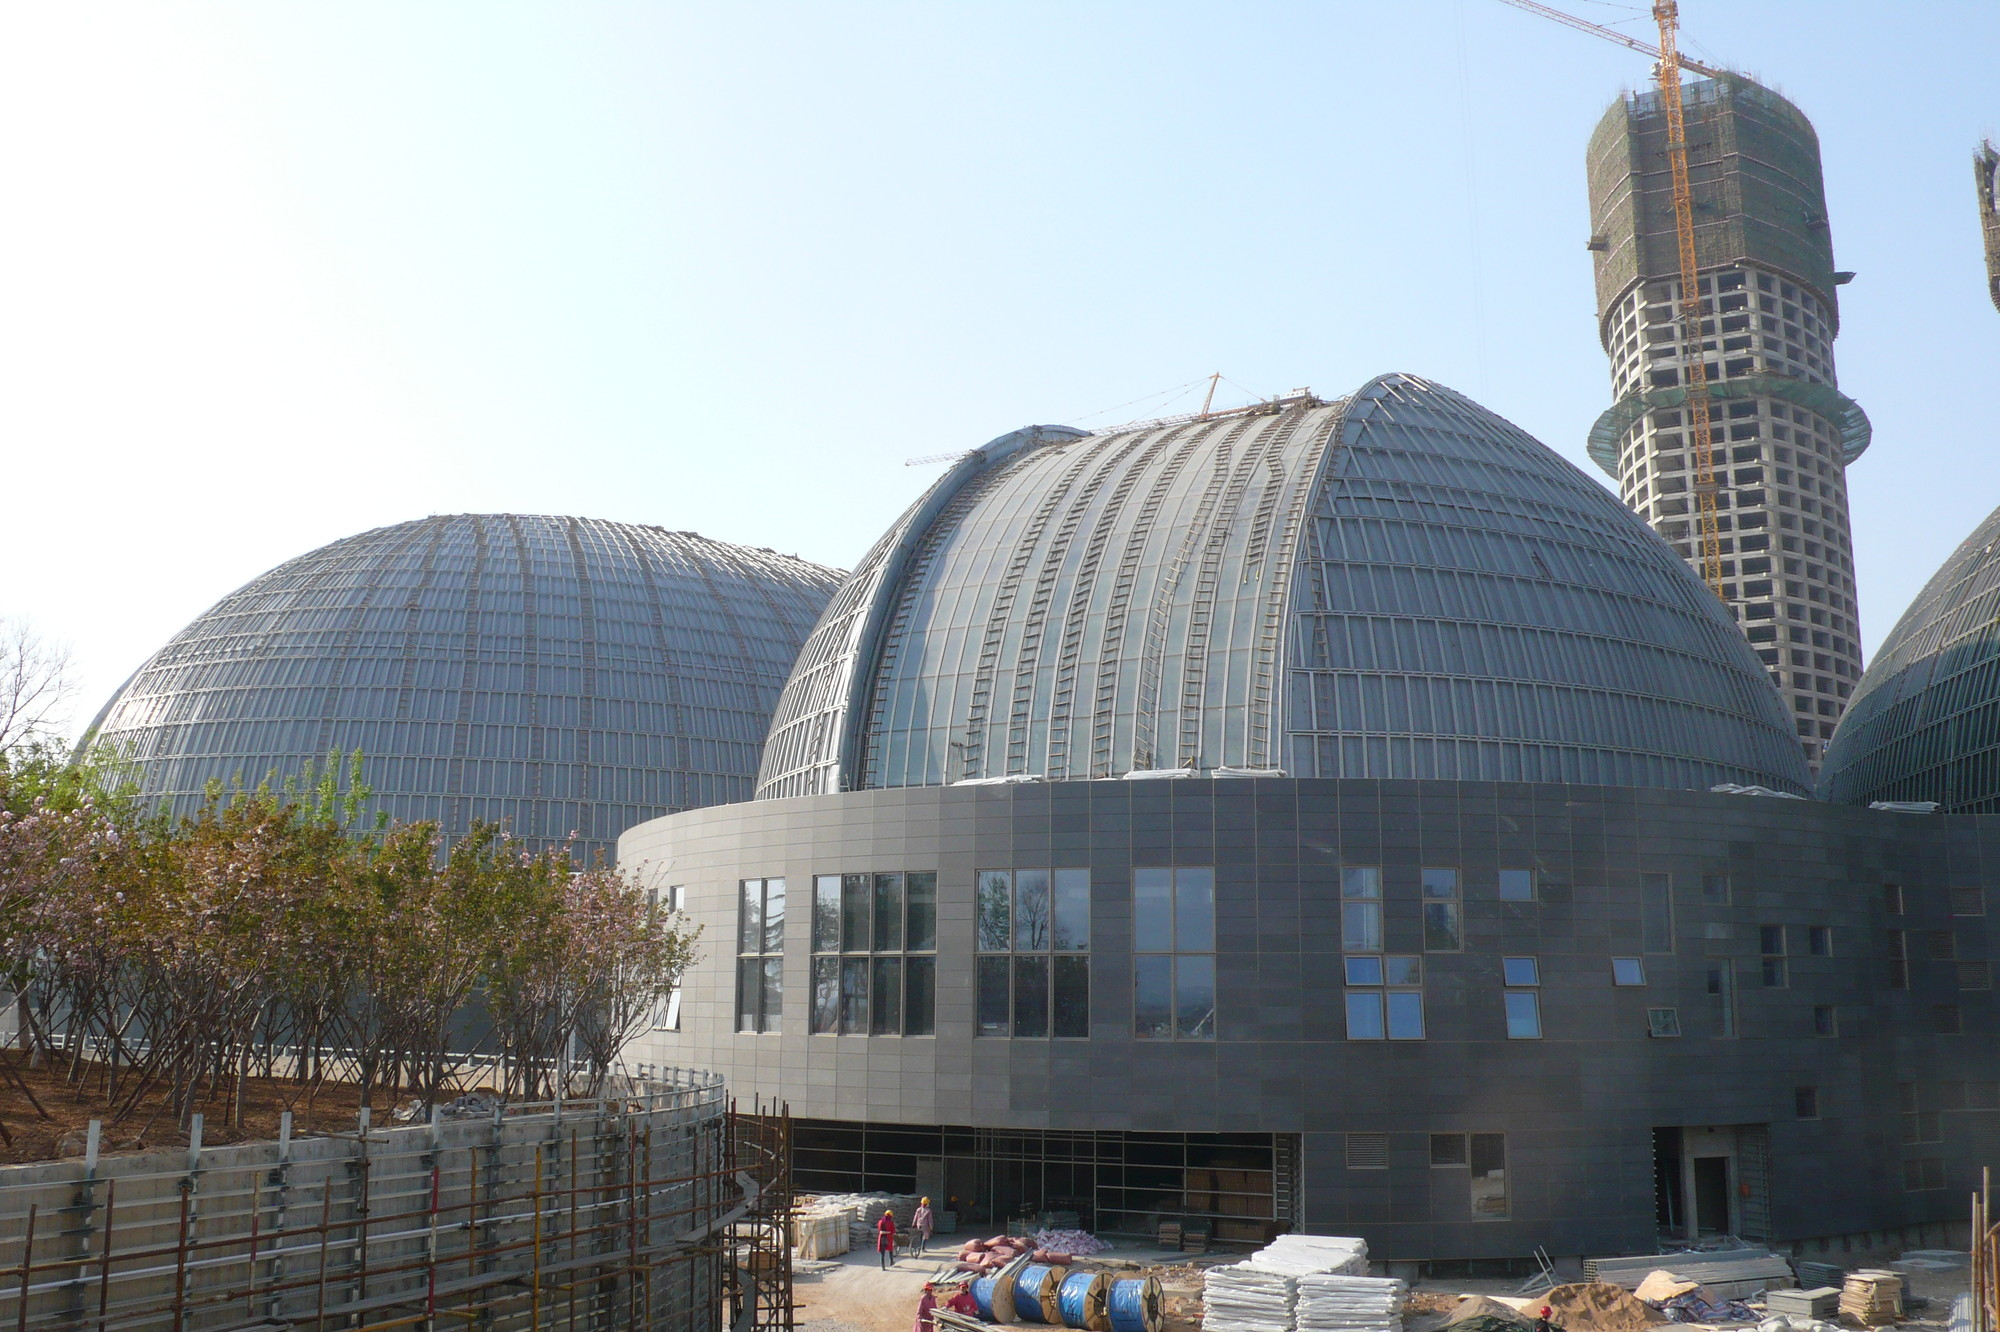 Courtesy Car City >> In Progress: Jinan Cultural centre / Paul Andreu Architecte + Richez Associes + BIAD | ArchDaily